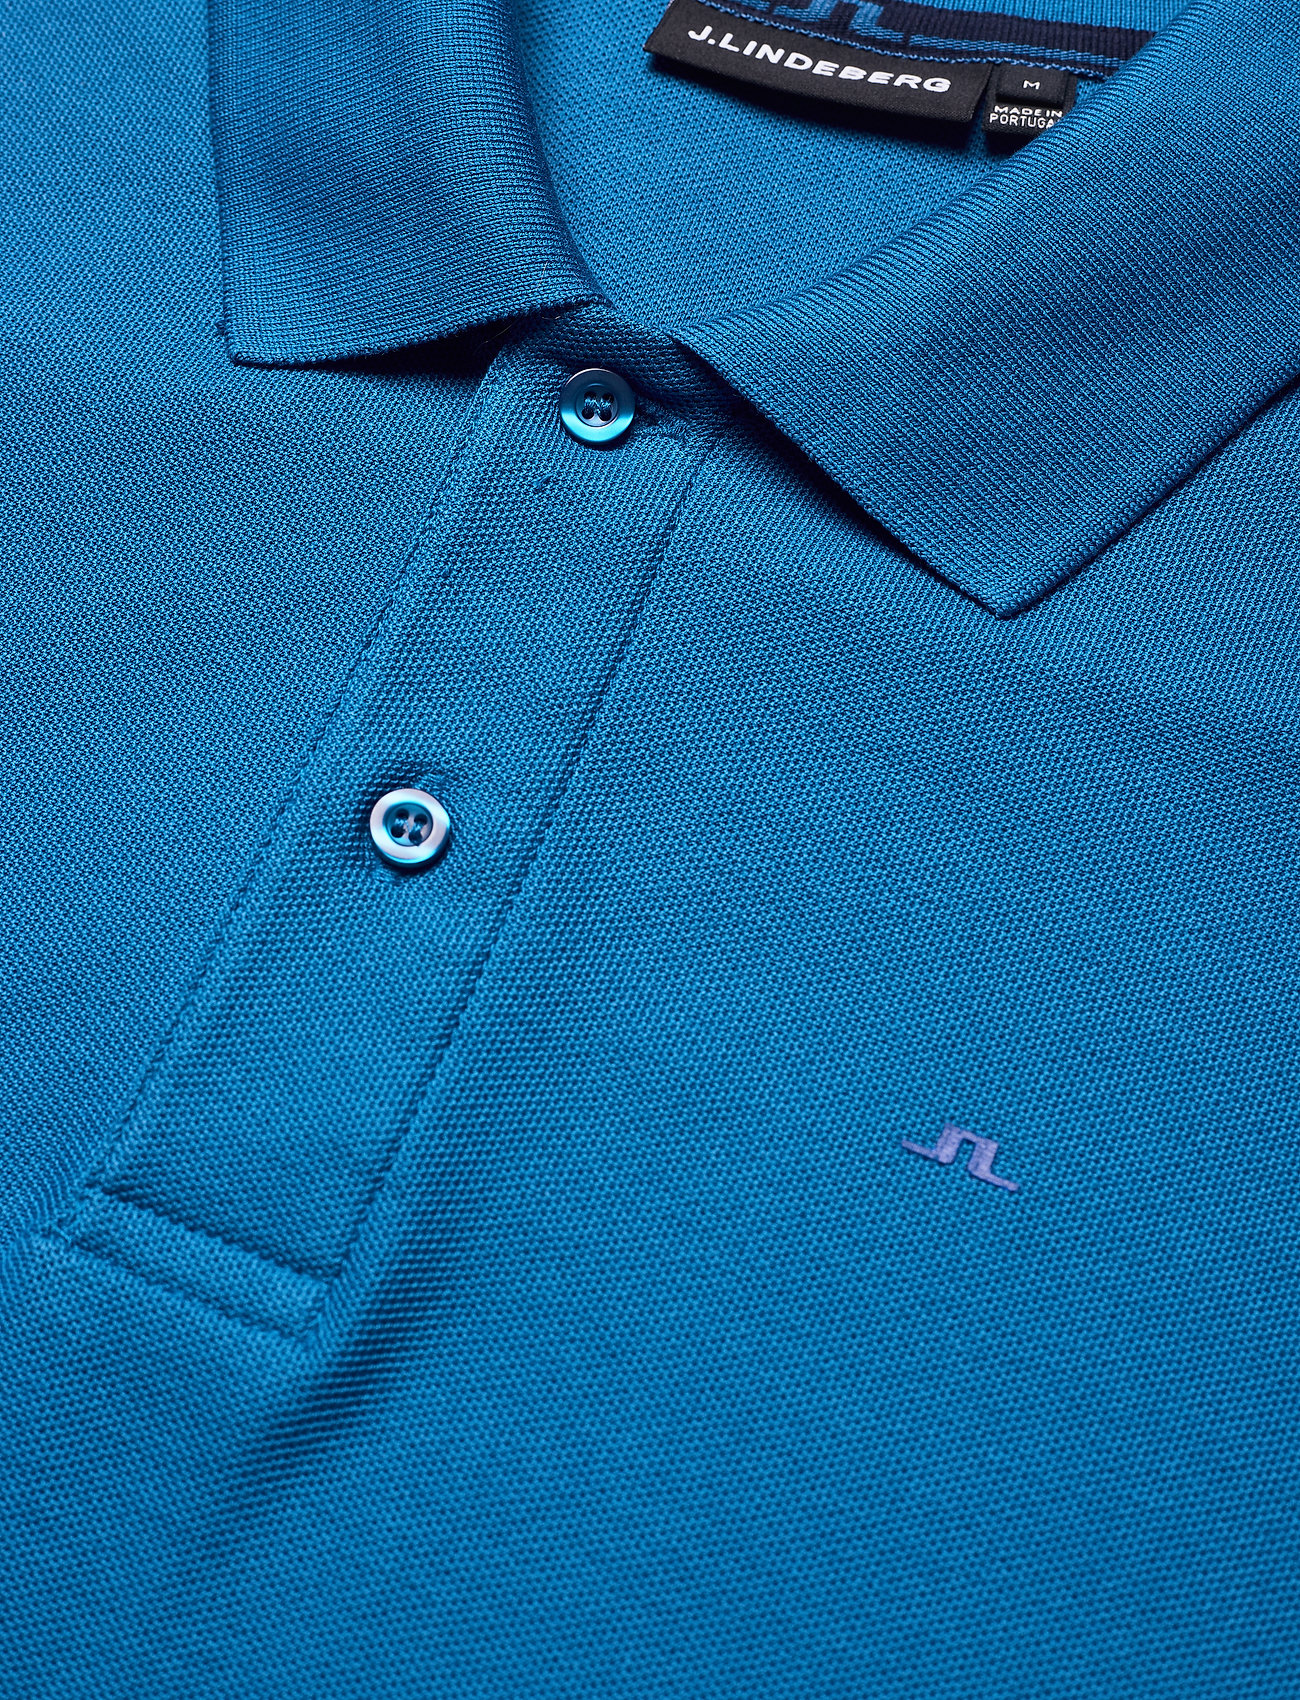 J. Lindeberg Troy Polo Shirt  Clean Pique - Poloskjorter EGYPTIAN BLUE - Menn Klær